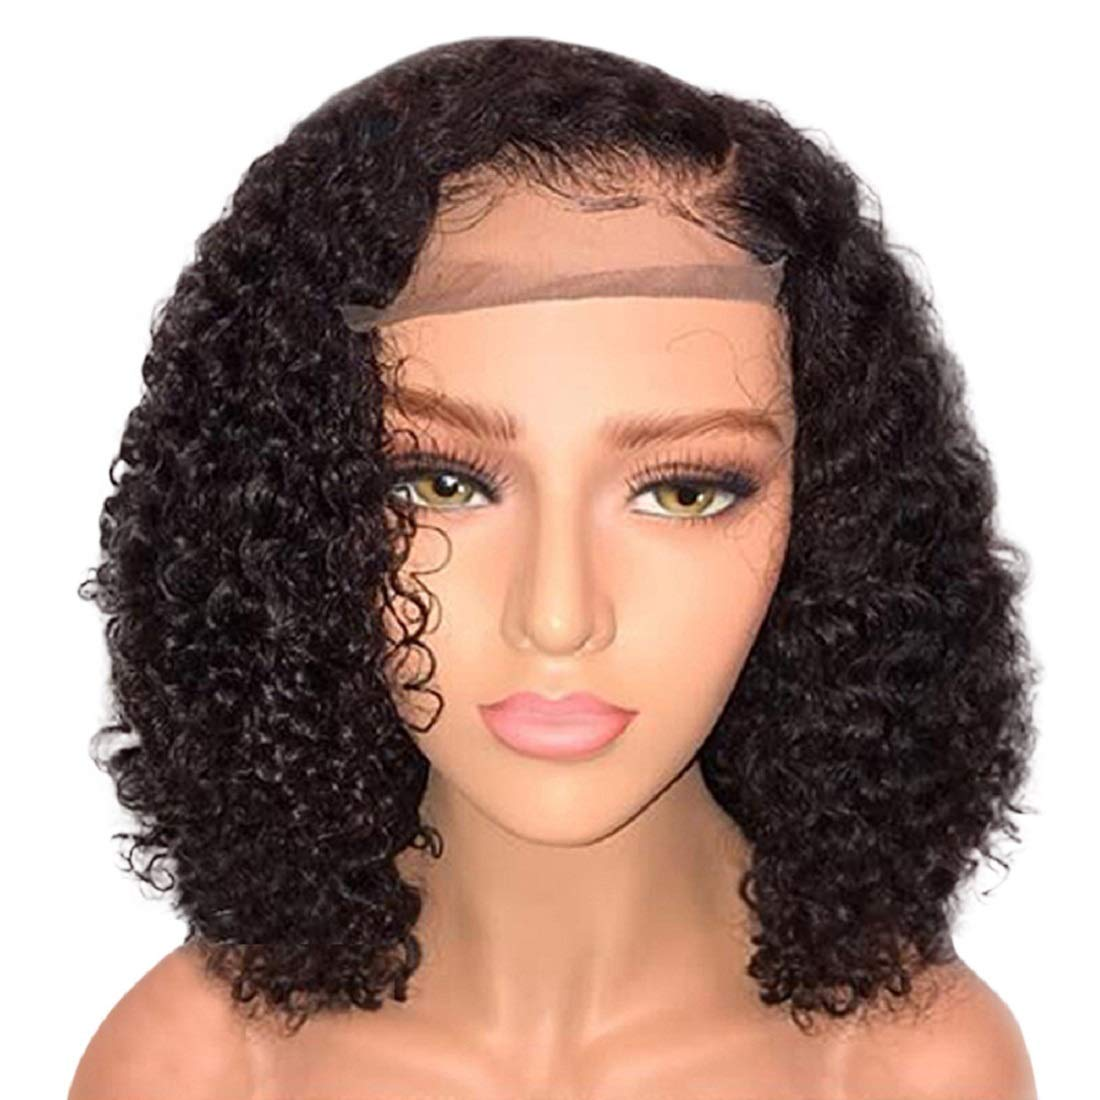 Nevera Women's Curly Black Wig Lace Front Wavy Bob Hairpiece Natural Full Wig Breathable Wig Cup for Costume